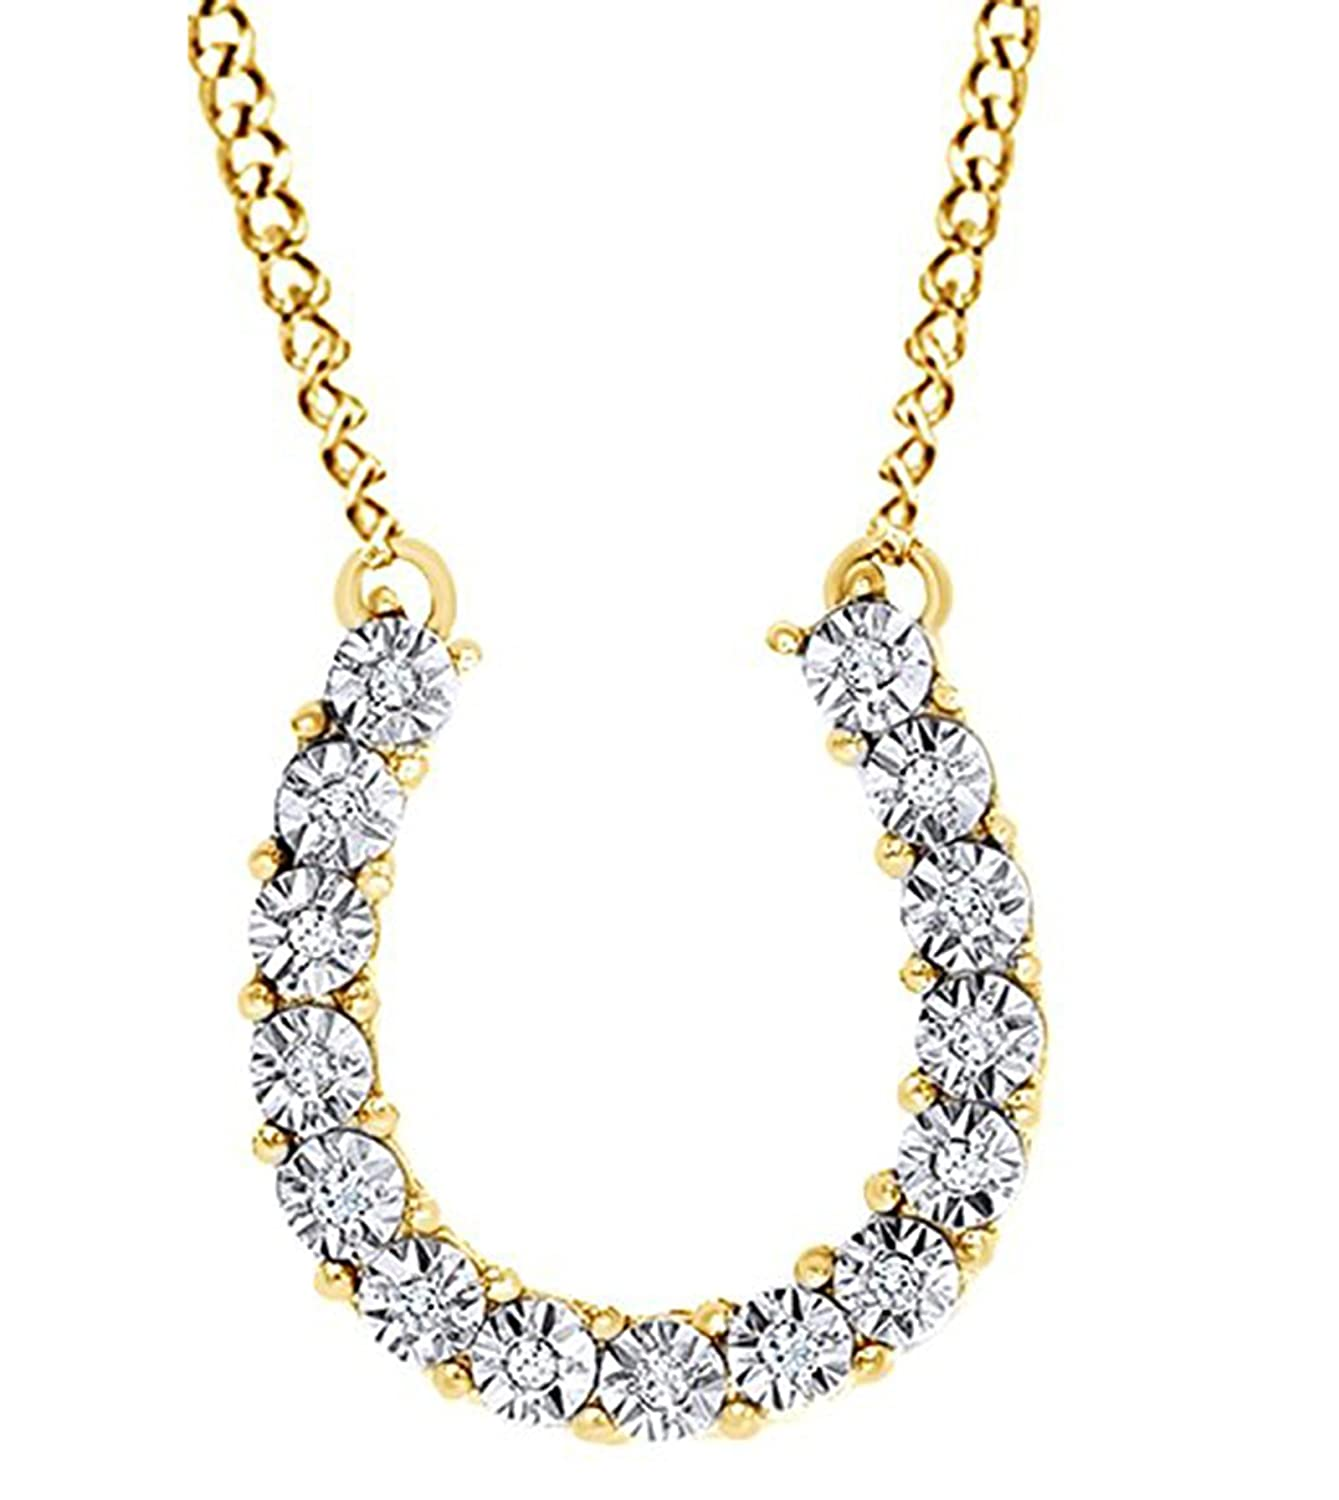 Suhana Jewellery Simulated Diamond Studded Elegant Fashion Charm Pendant Necklace in 14K White Gold Plated With Box Chain